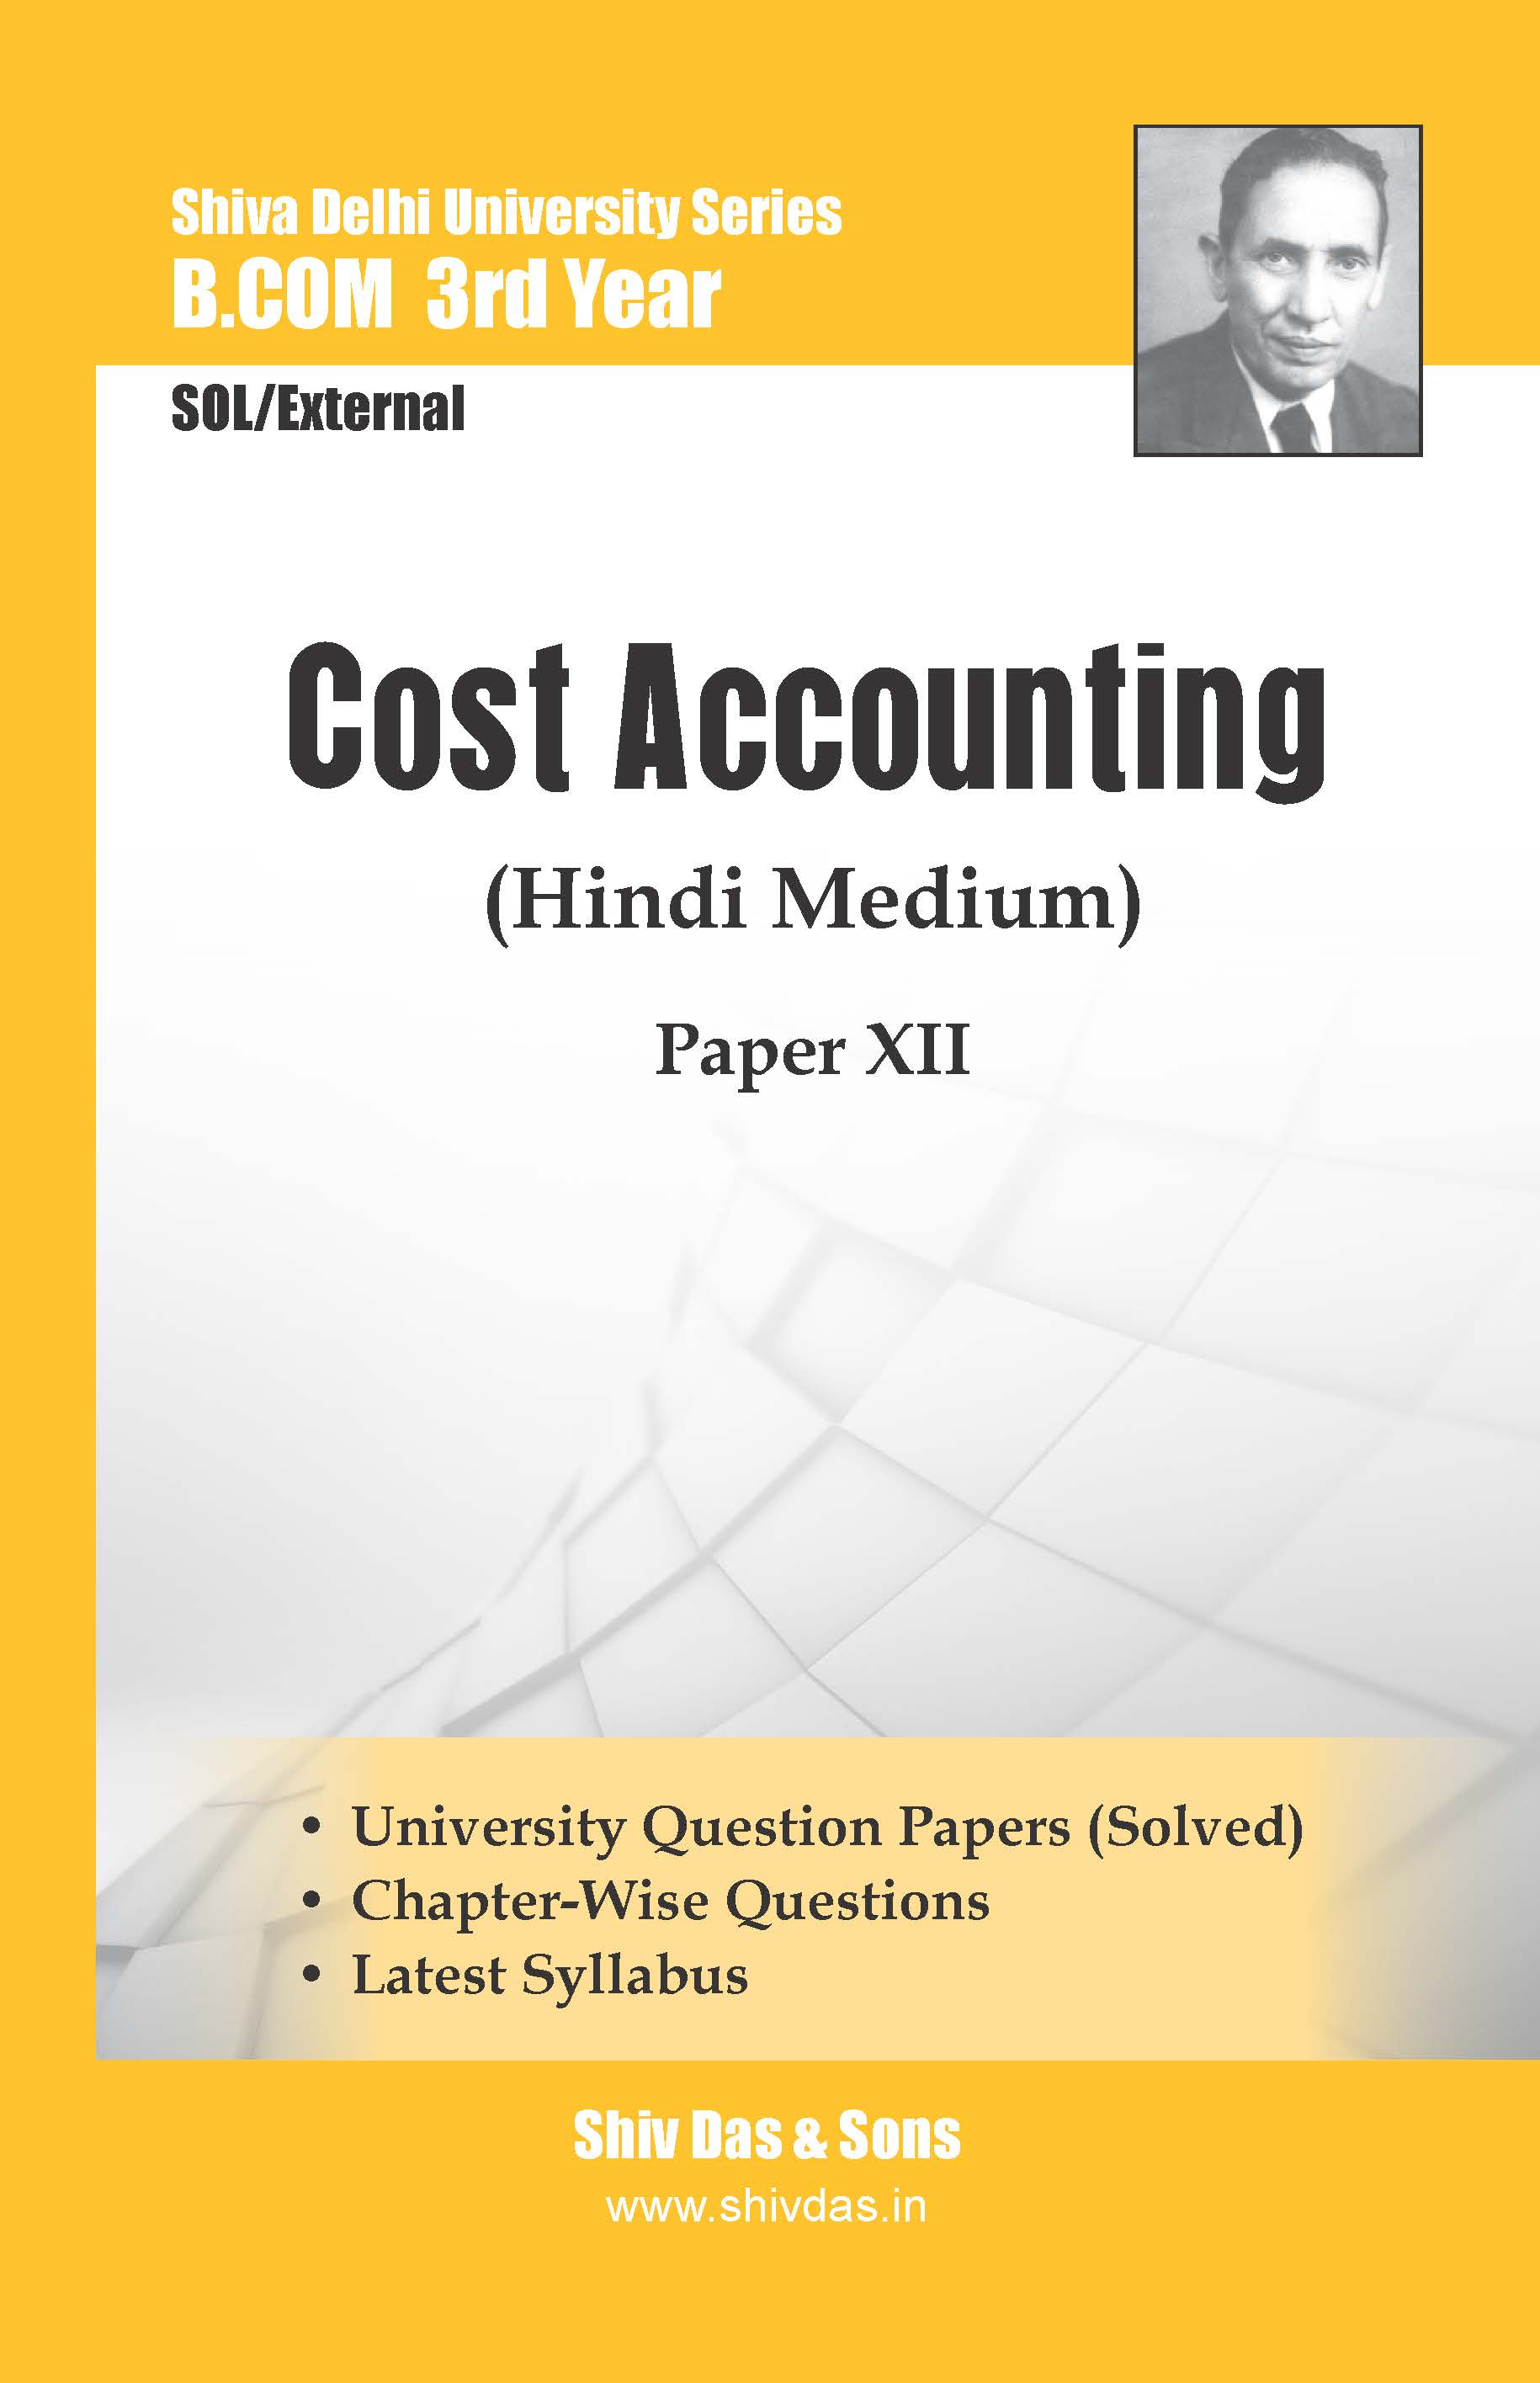 B.Com-3rd Year-SOL/External-Cost Accounting (Hindi Medium)-Shiv Das-Delhi University Series